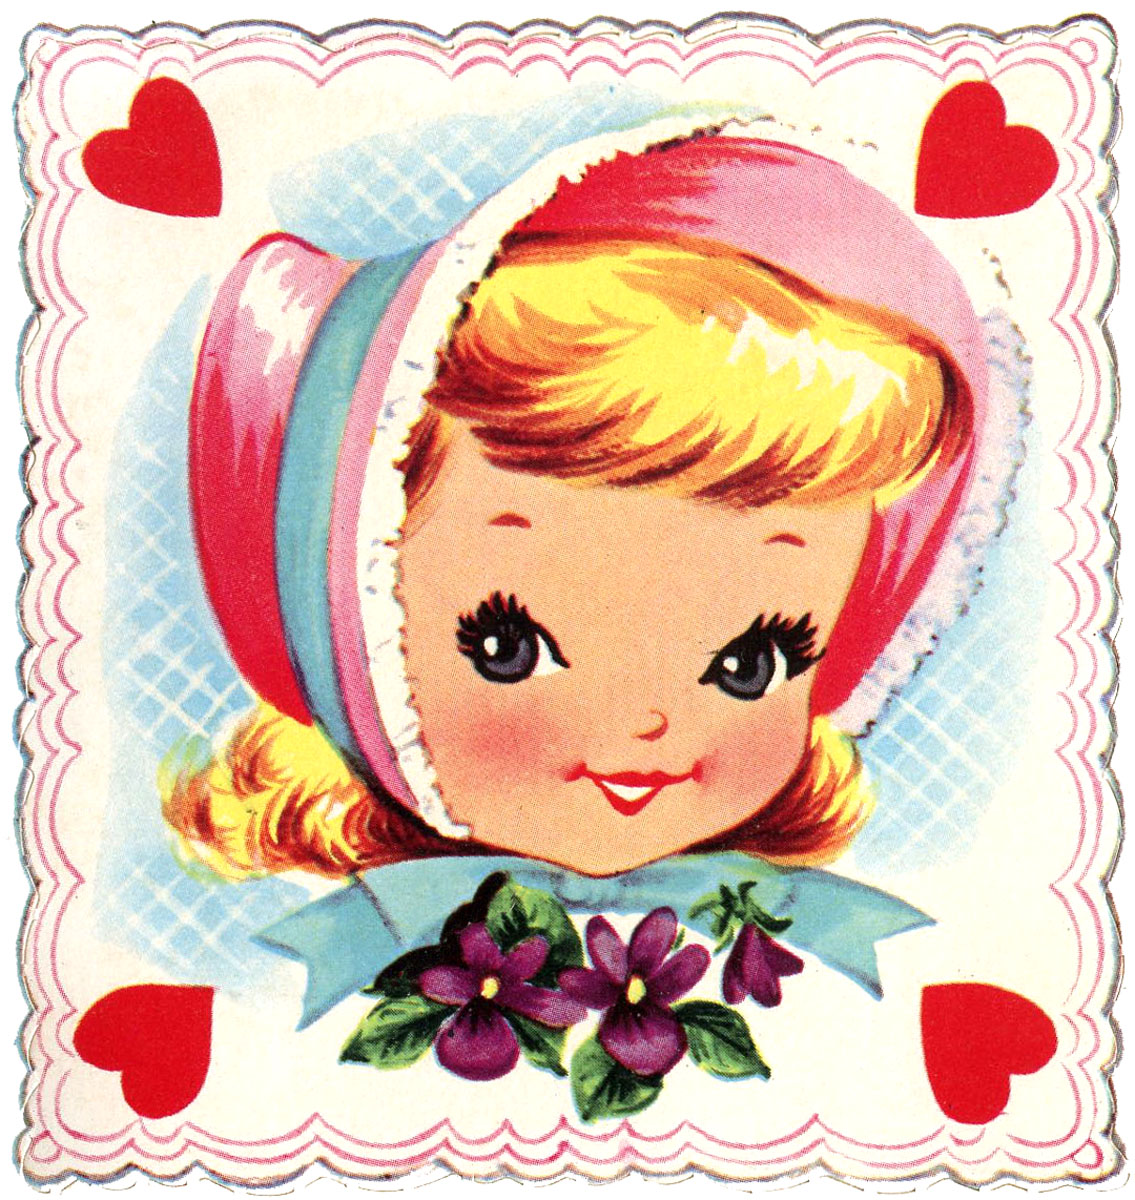 Retro Girl in Bonnet Valentine Square